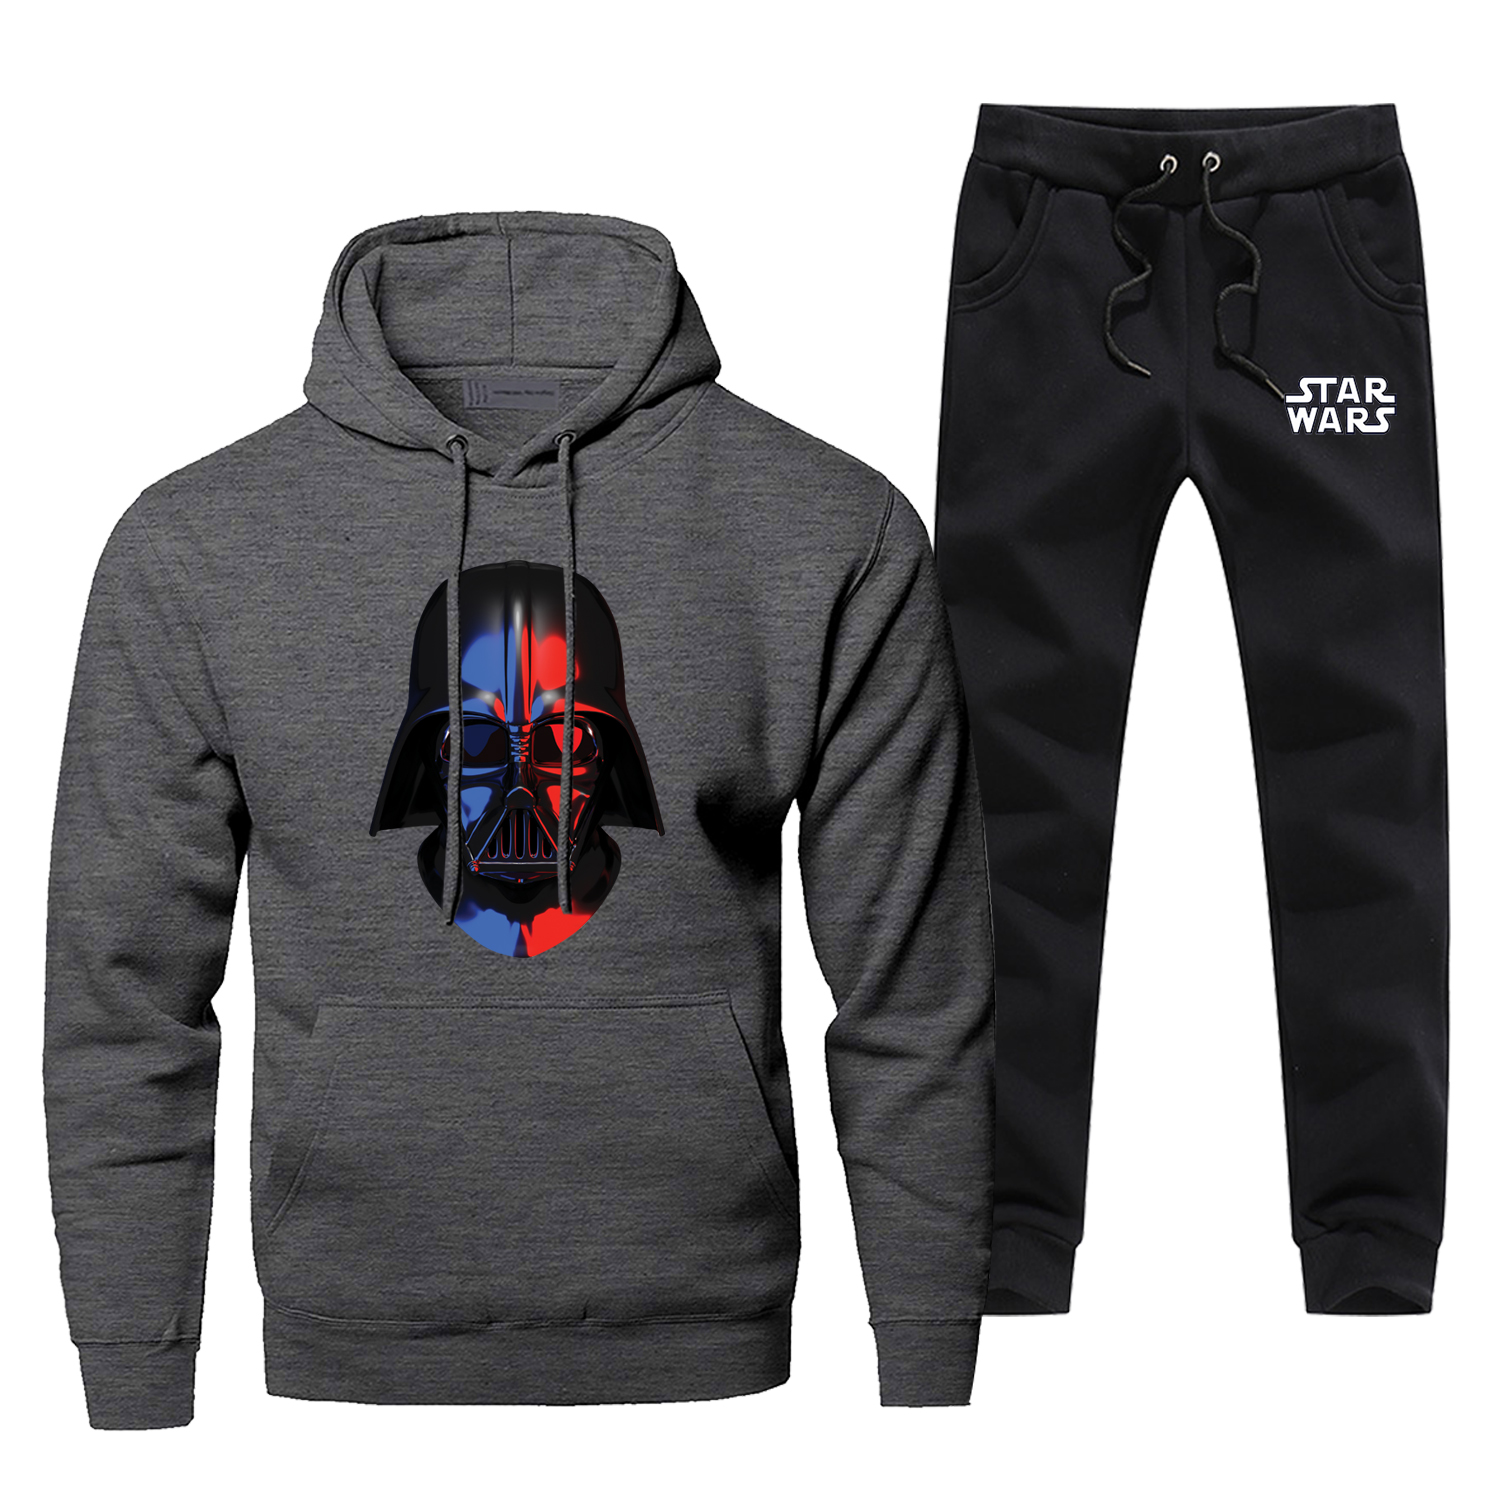 Star Wars Darth Vader Funny Hoodies+pants Two Piece Sets Men Funny Sweatshirt Casual Fleece Sportswear Streetwear Sweatpants